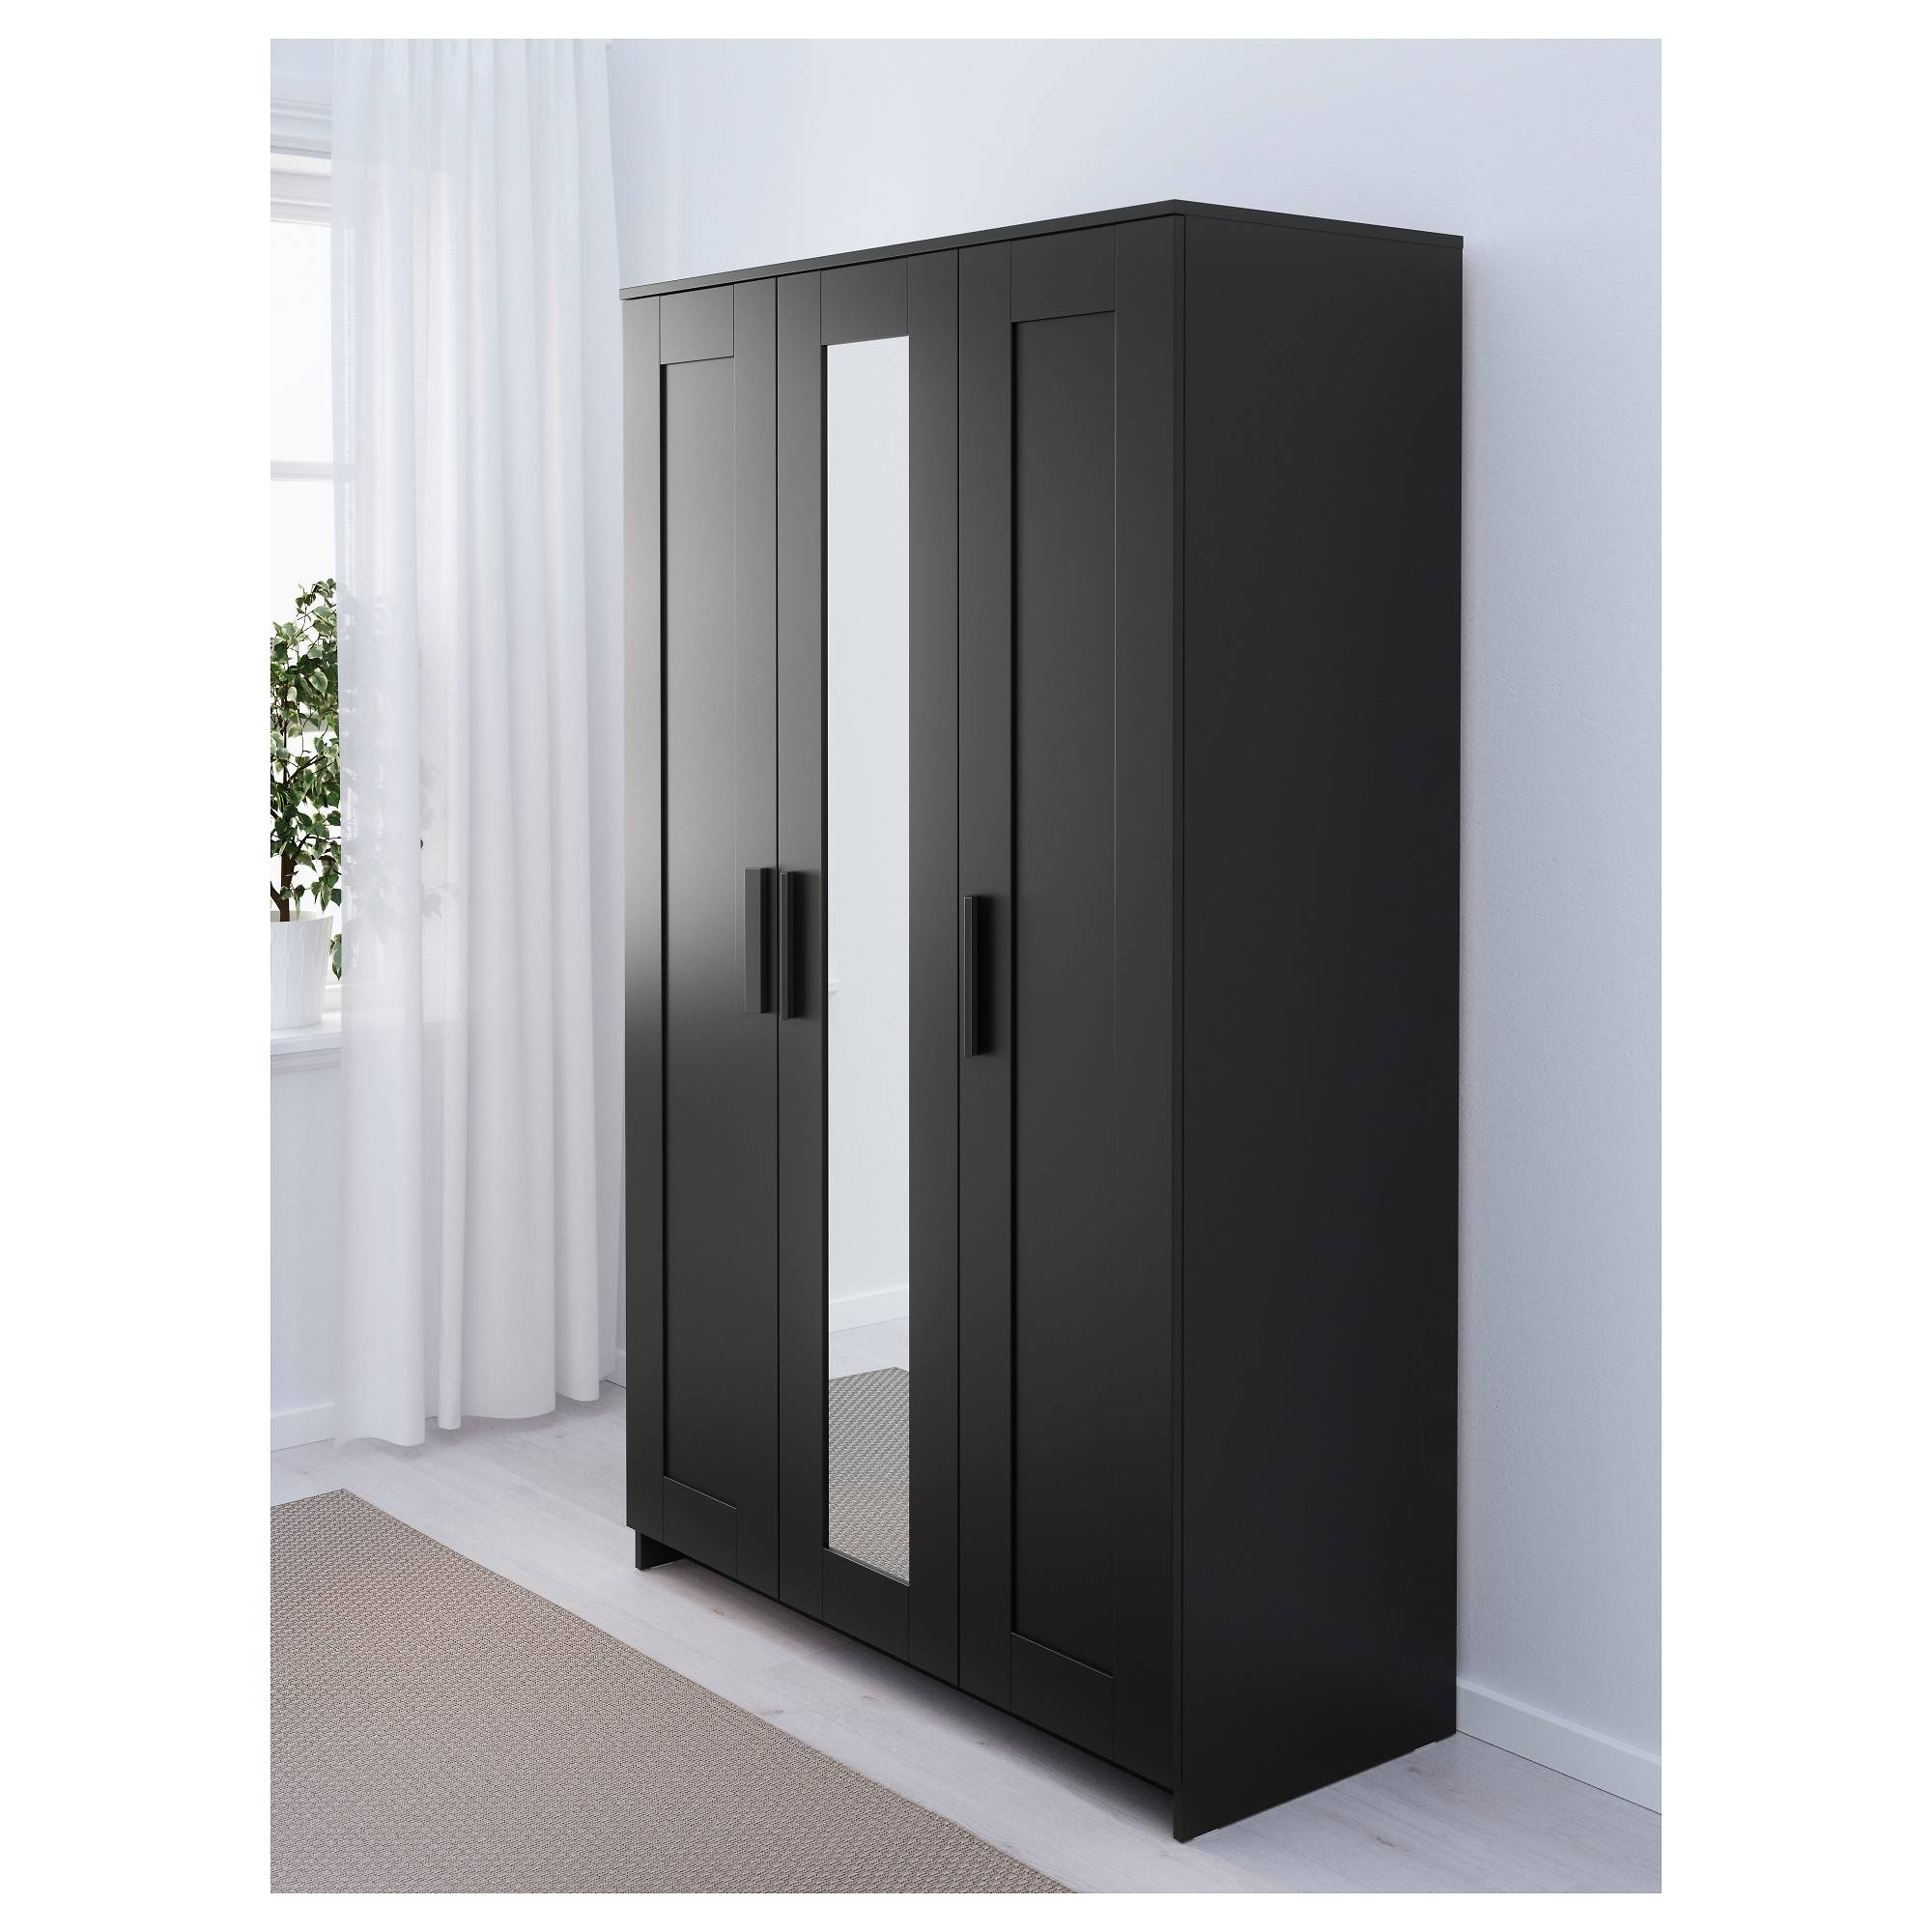 Brimnes Wardrobe With 3 Doors - Black - Ikea for 3 Door Black Wardrobes (Image 2 of 15)